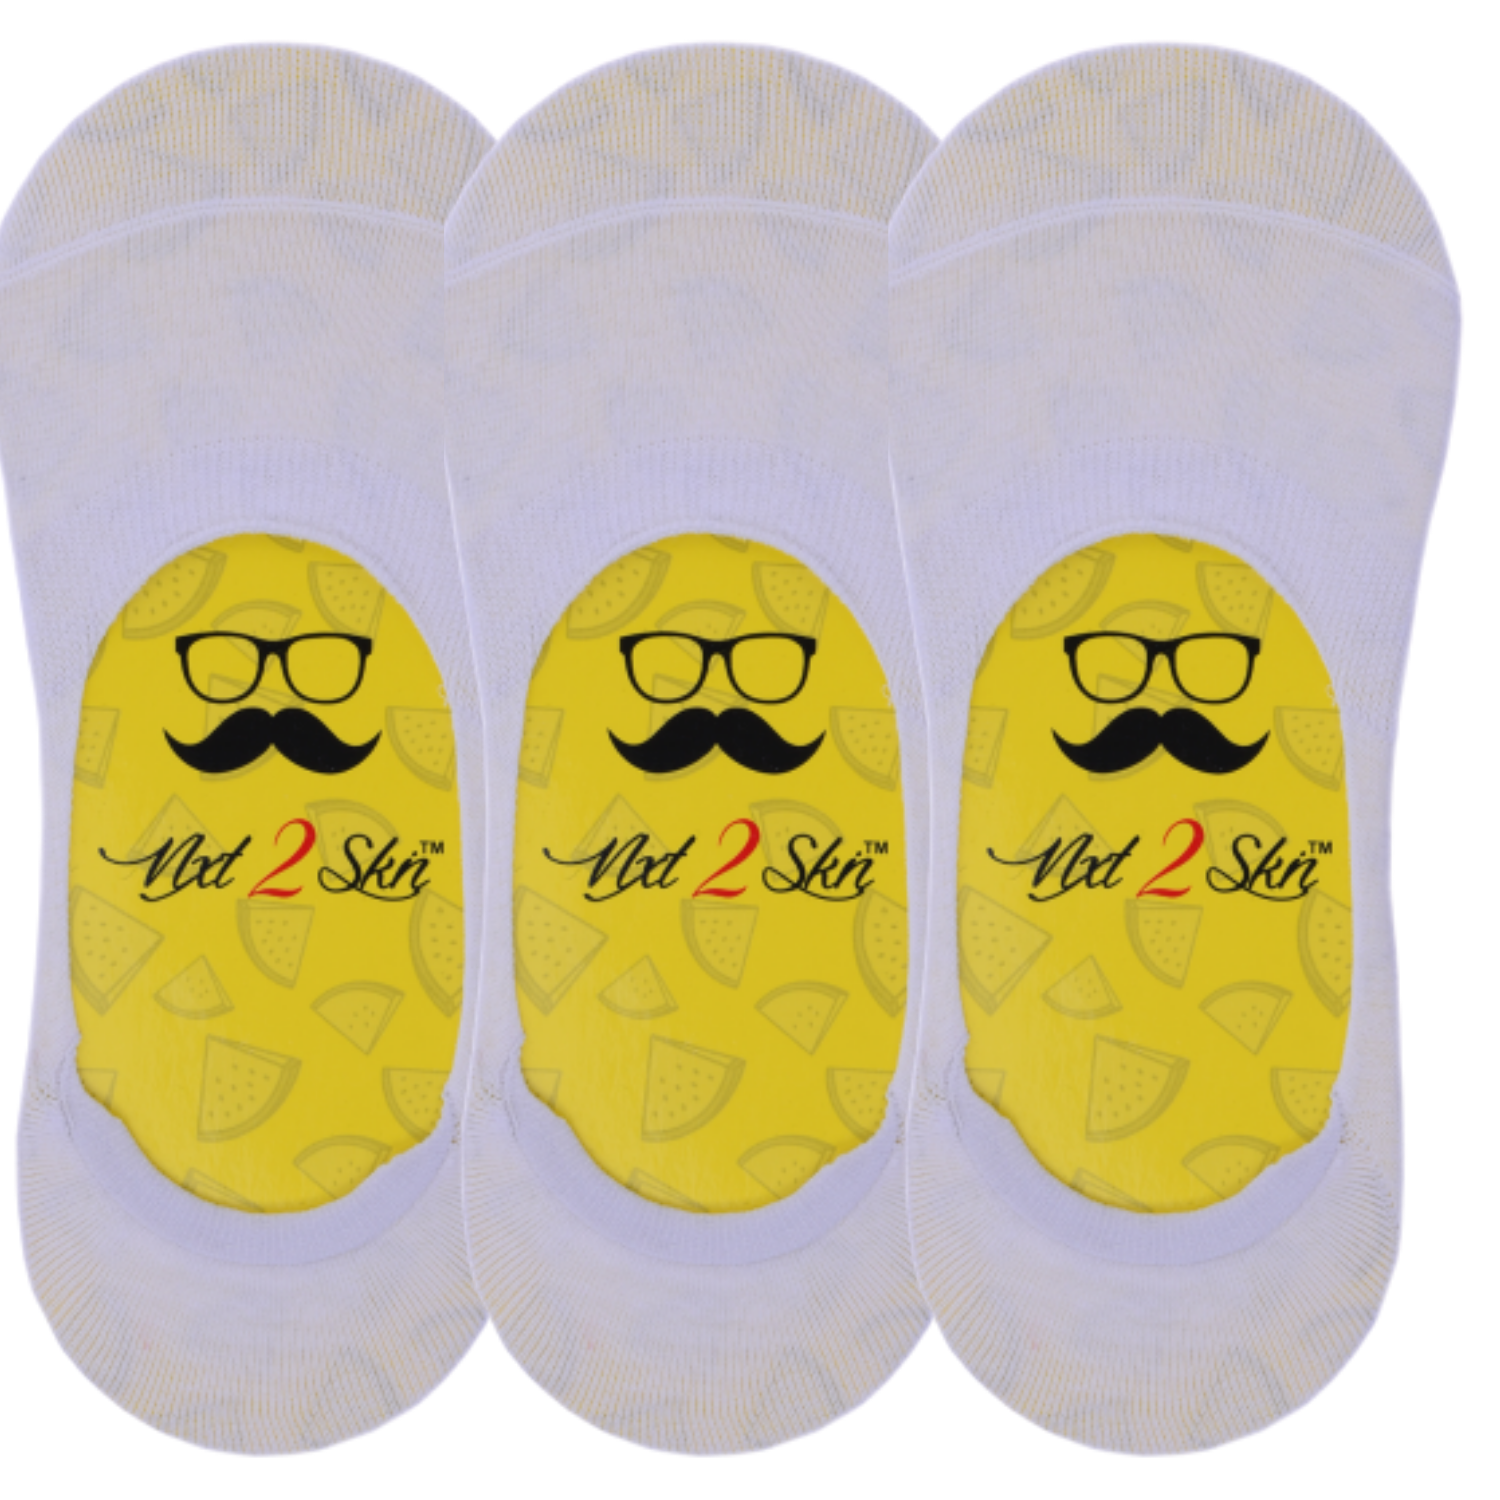 N2S NEXT2SKIN Men's Cotton Hidden Loafer No Show Invisible Socks with Anti Slip Silicon   Pack of 3 Pairs  White